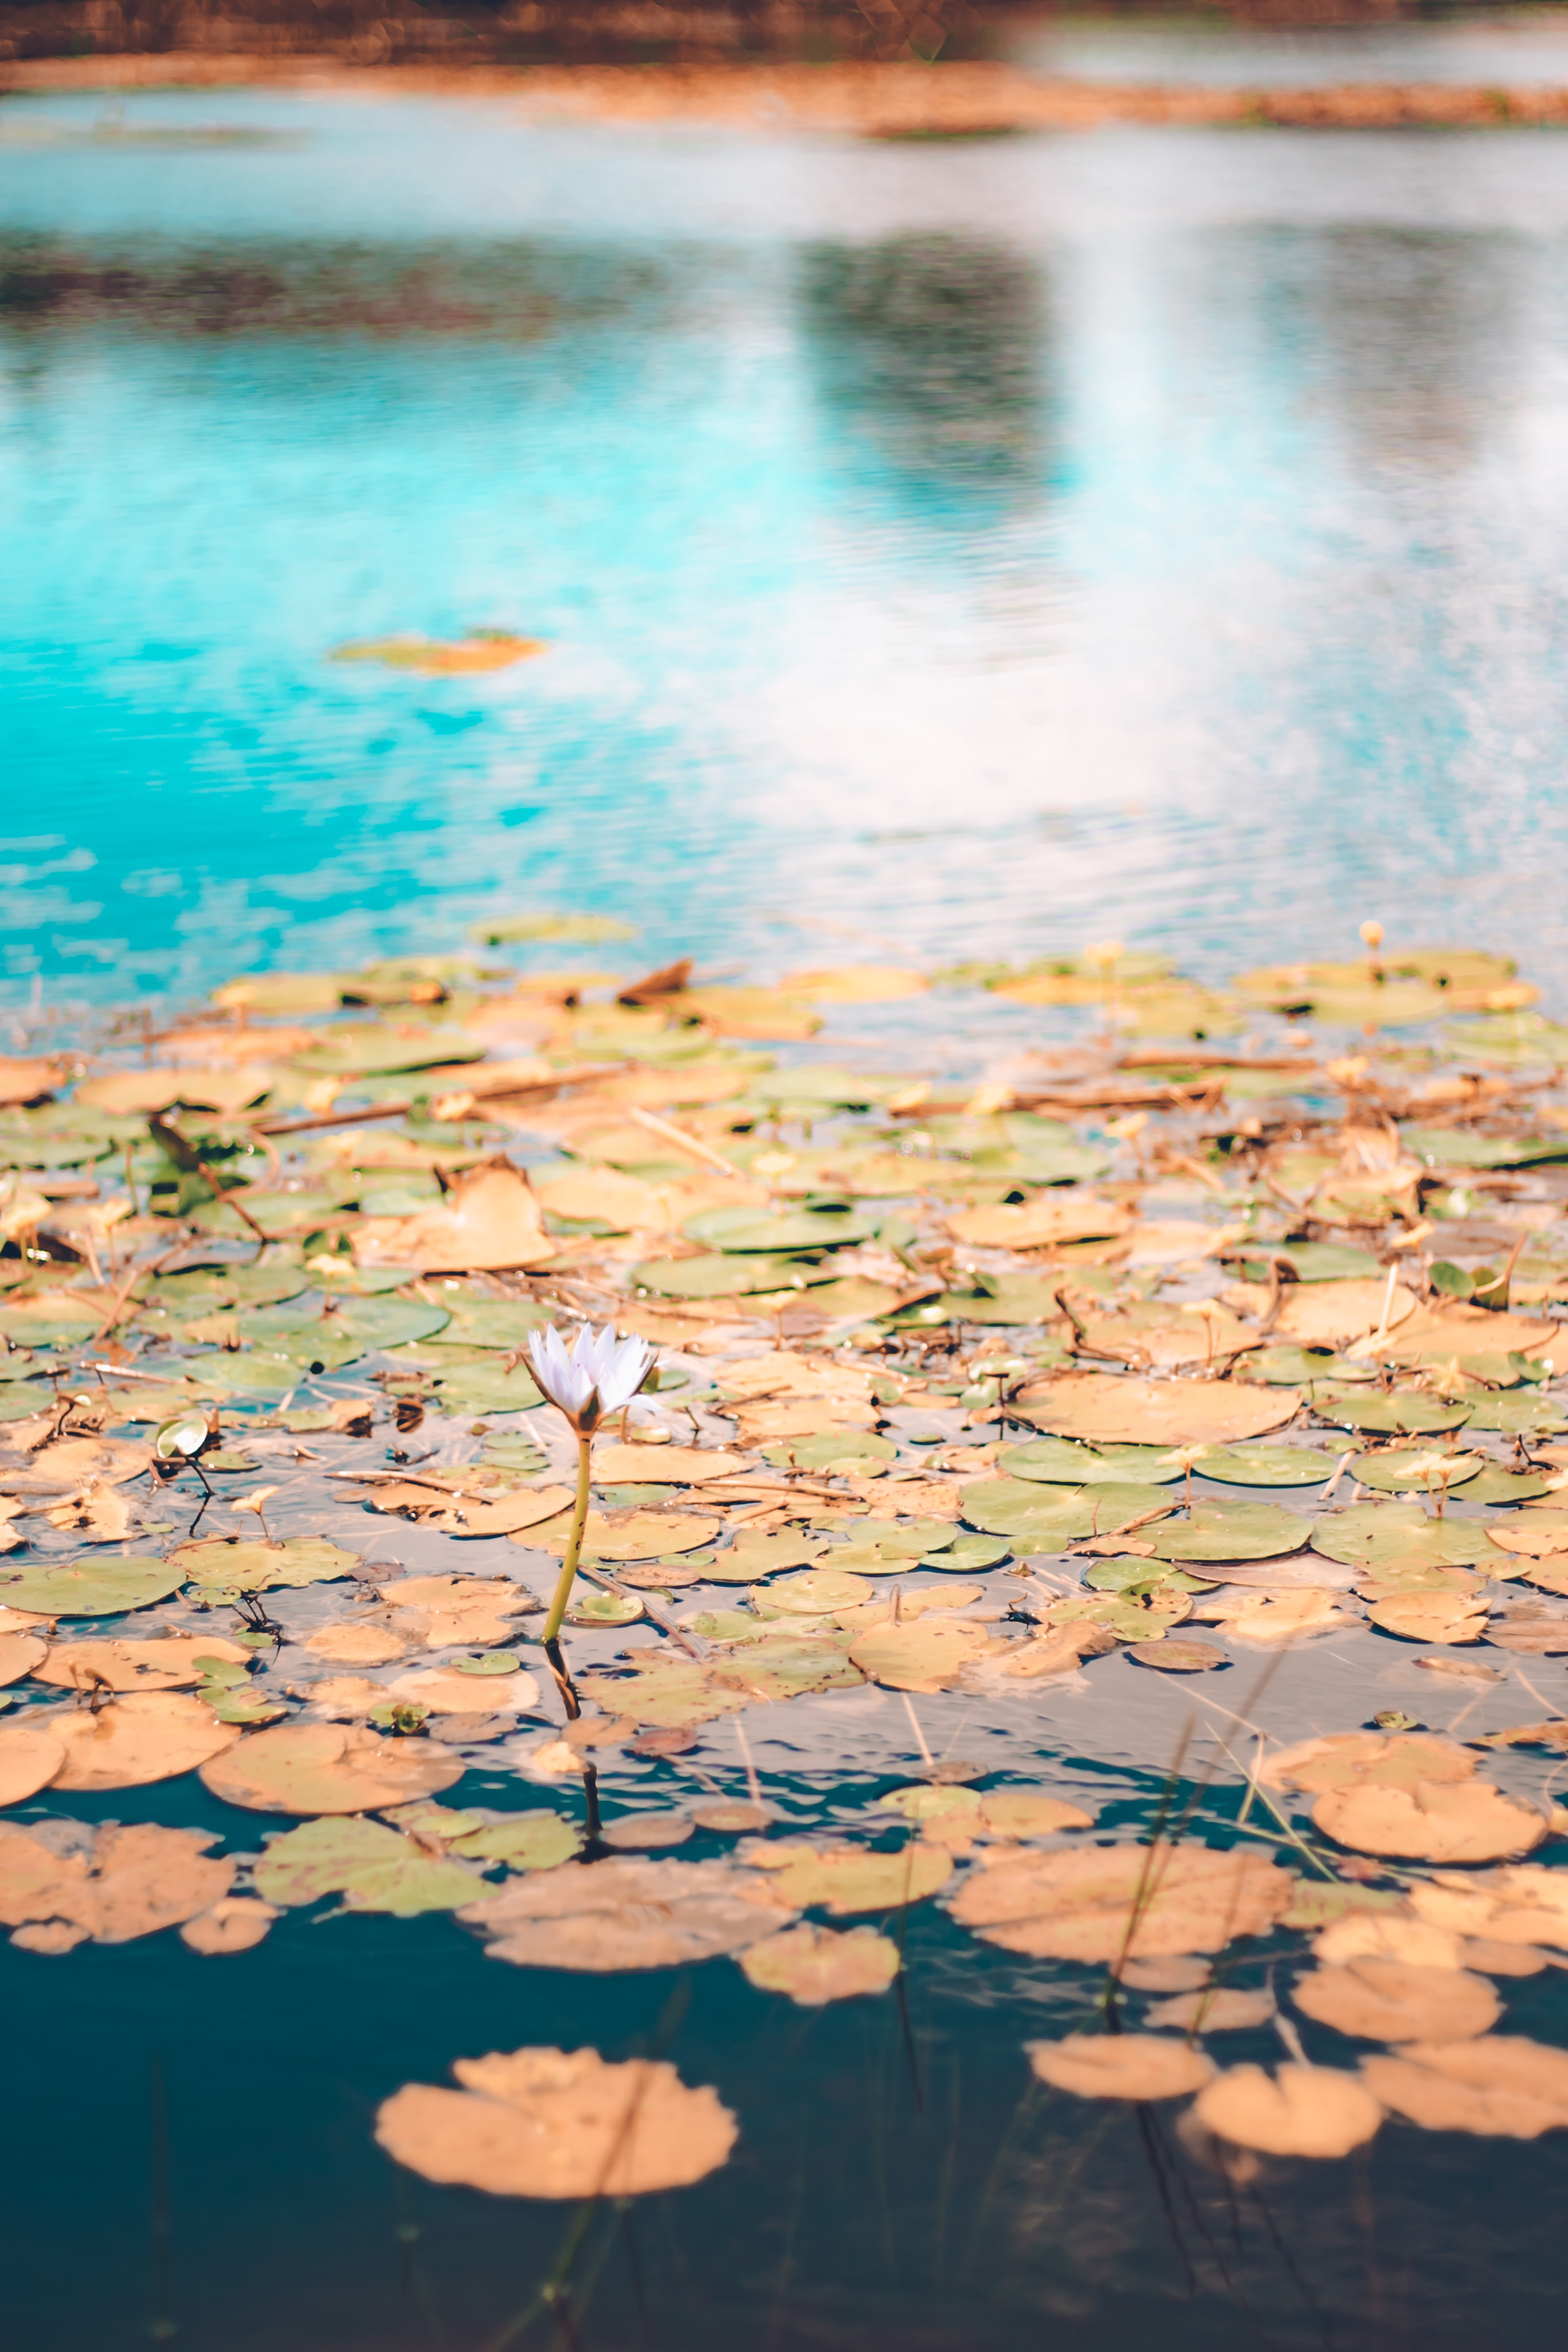 shallow focus photography of lily pads